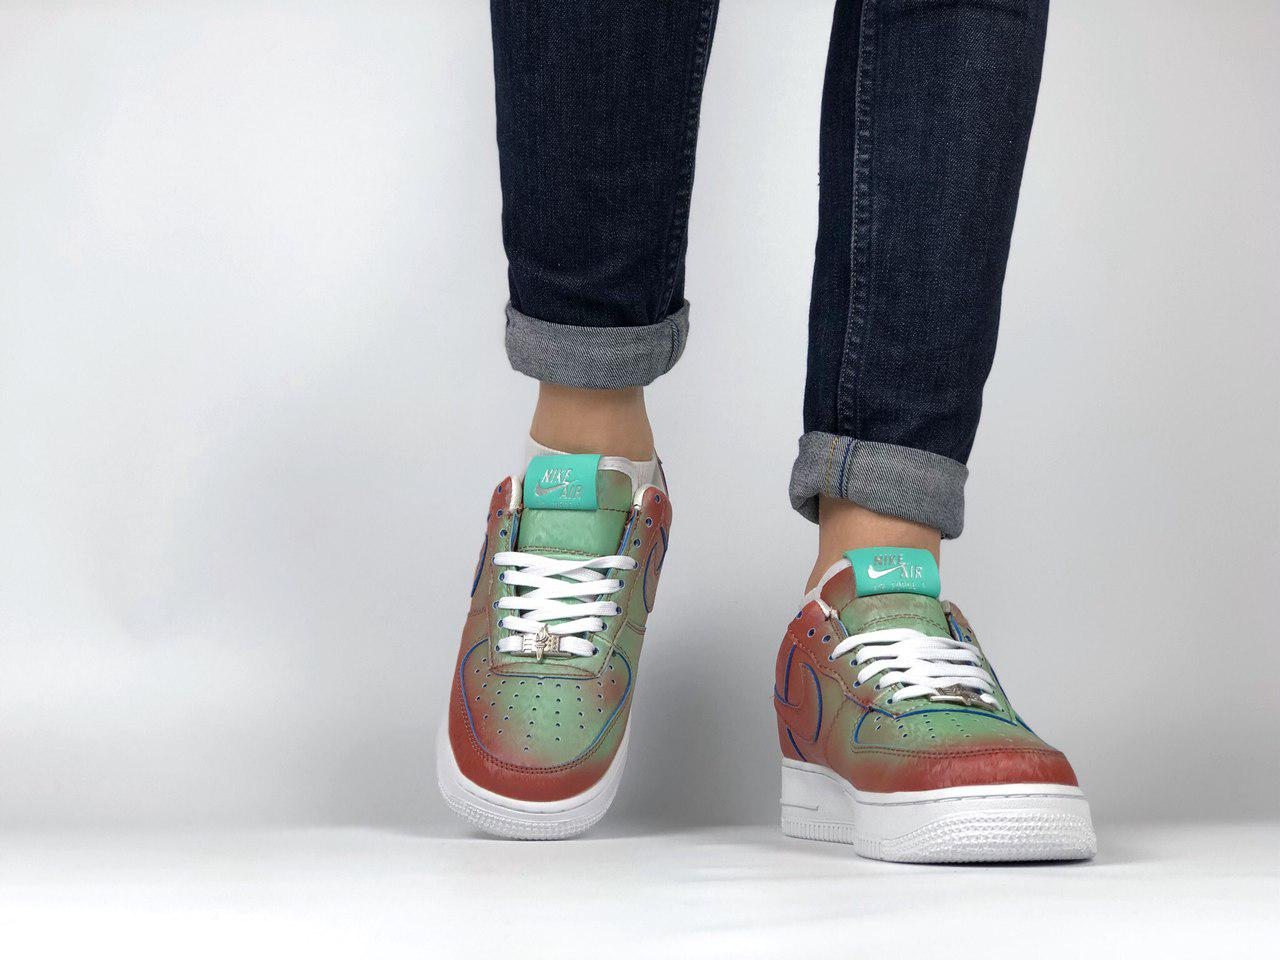 604435df ... Женские кроссовки Nike Air Force 1 Preserved Icons / Lady Liberty ,  Копия, ...